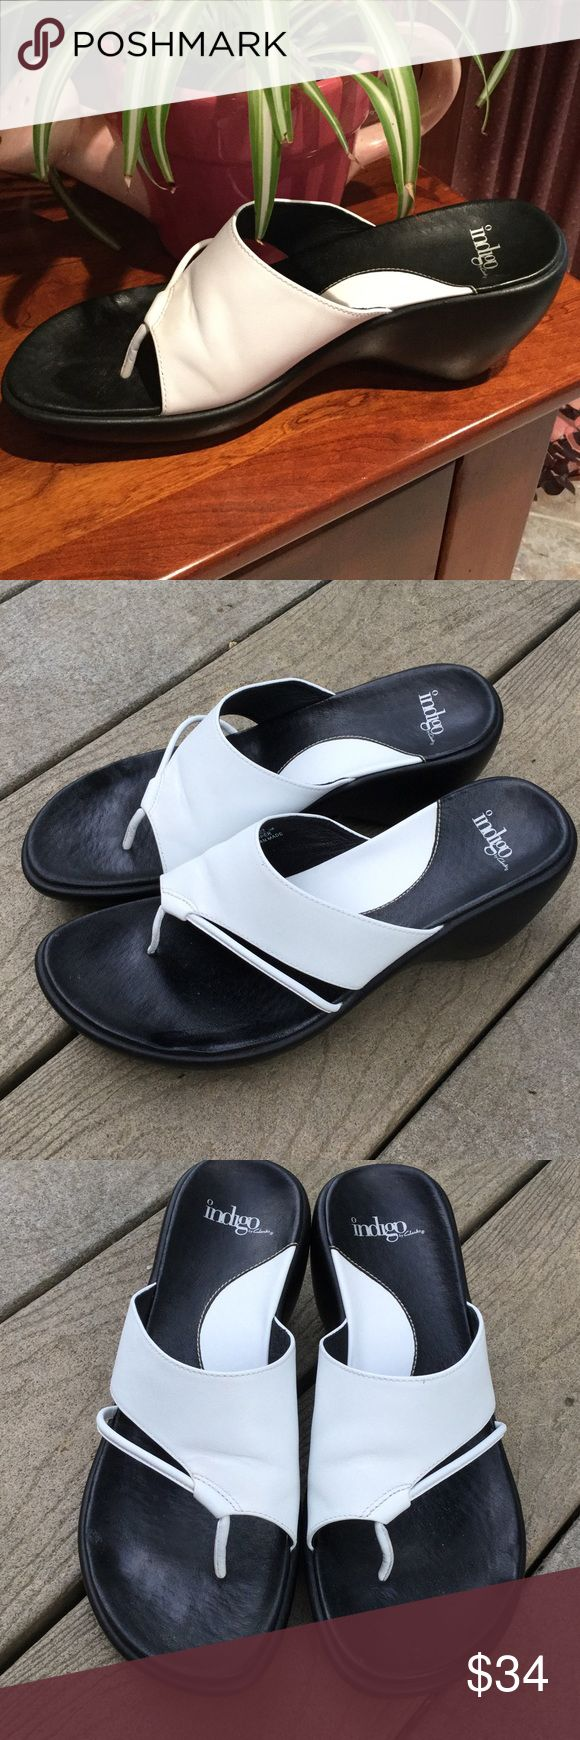 Indigo (Clarks) Leather Wrap Sandals in White The mirror image to the tan Indigos in my other listing. Clarks Indigo Shoes Sandals